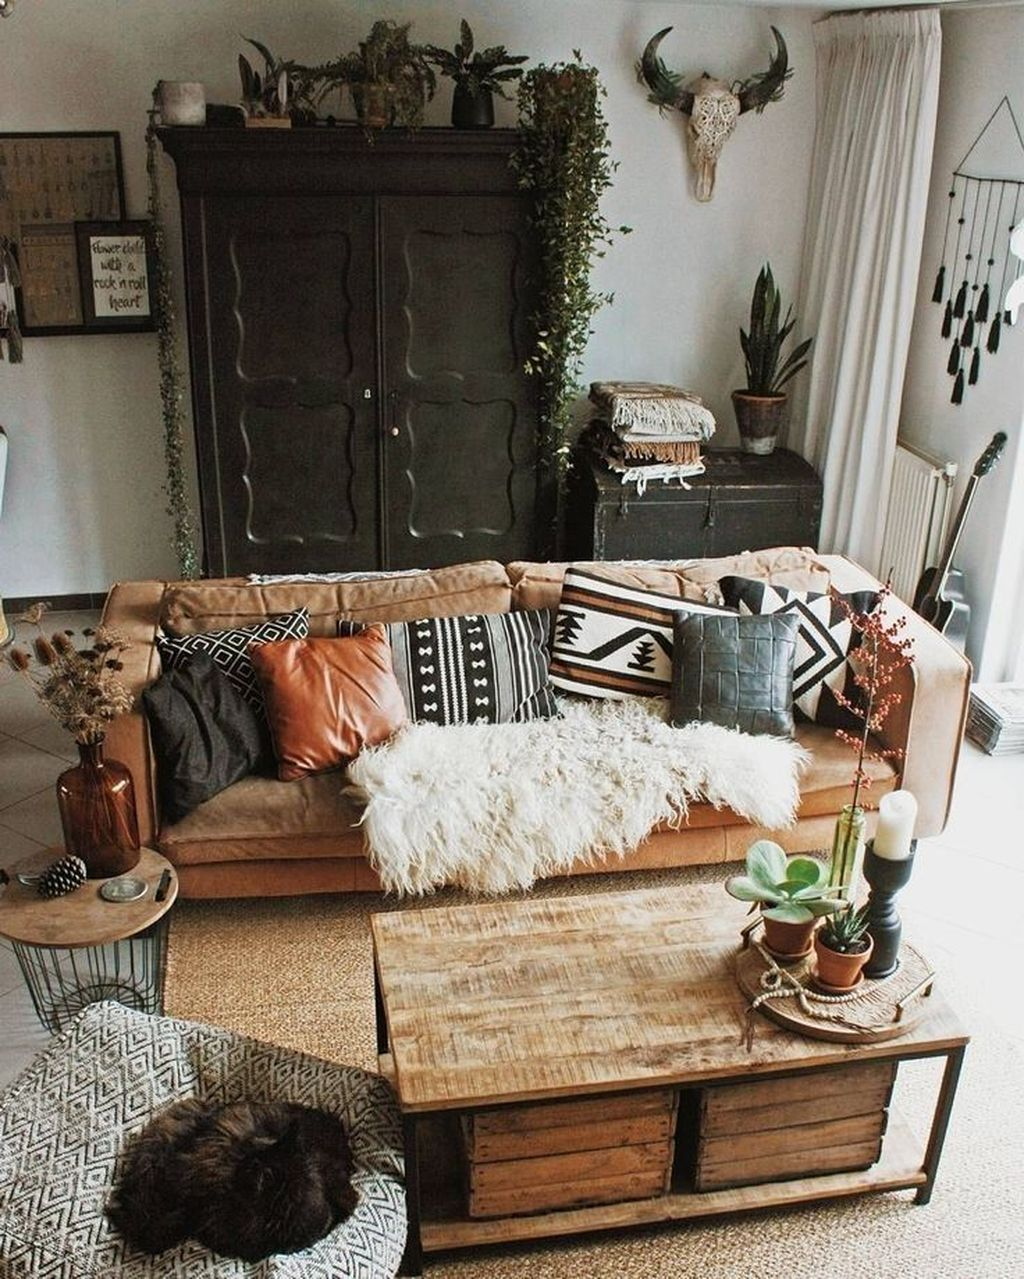 The Best Rustic Bohemian Living Room Decor Ideas 21